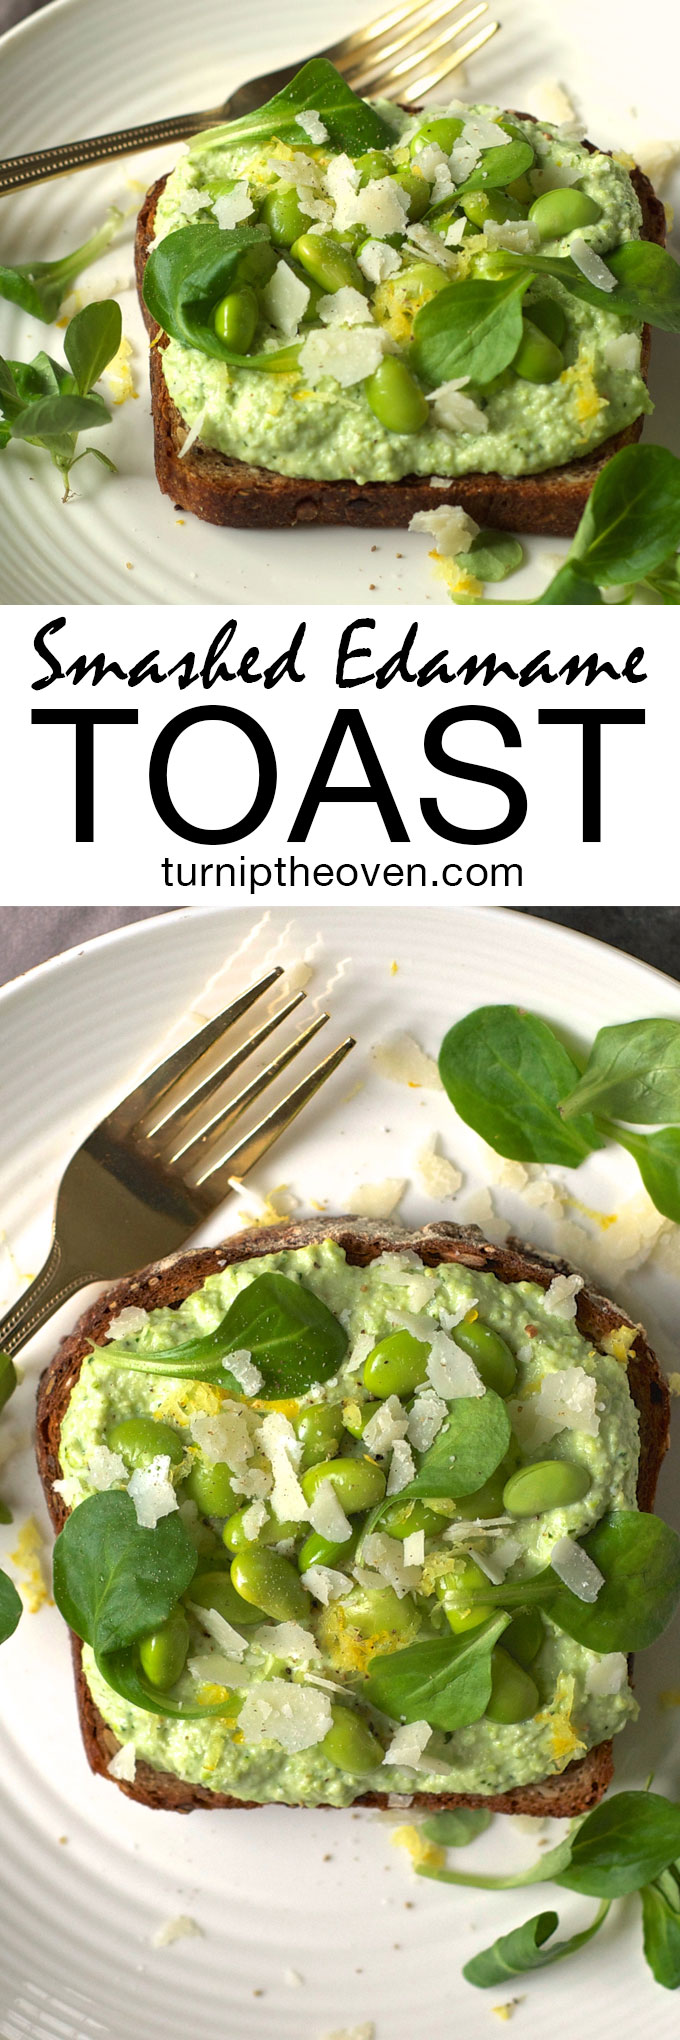 Move over avocado toast! This rich and creamy smashed edamame toast with ricotta and Parmesan is loaded with healthy protein. Perfect for a healthy breakfast, lunch or dinner.